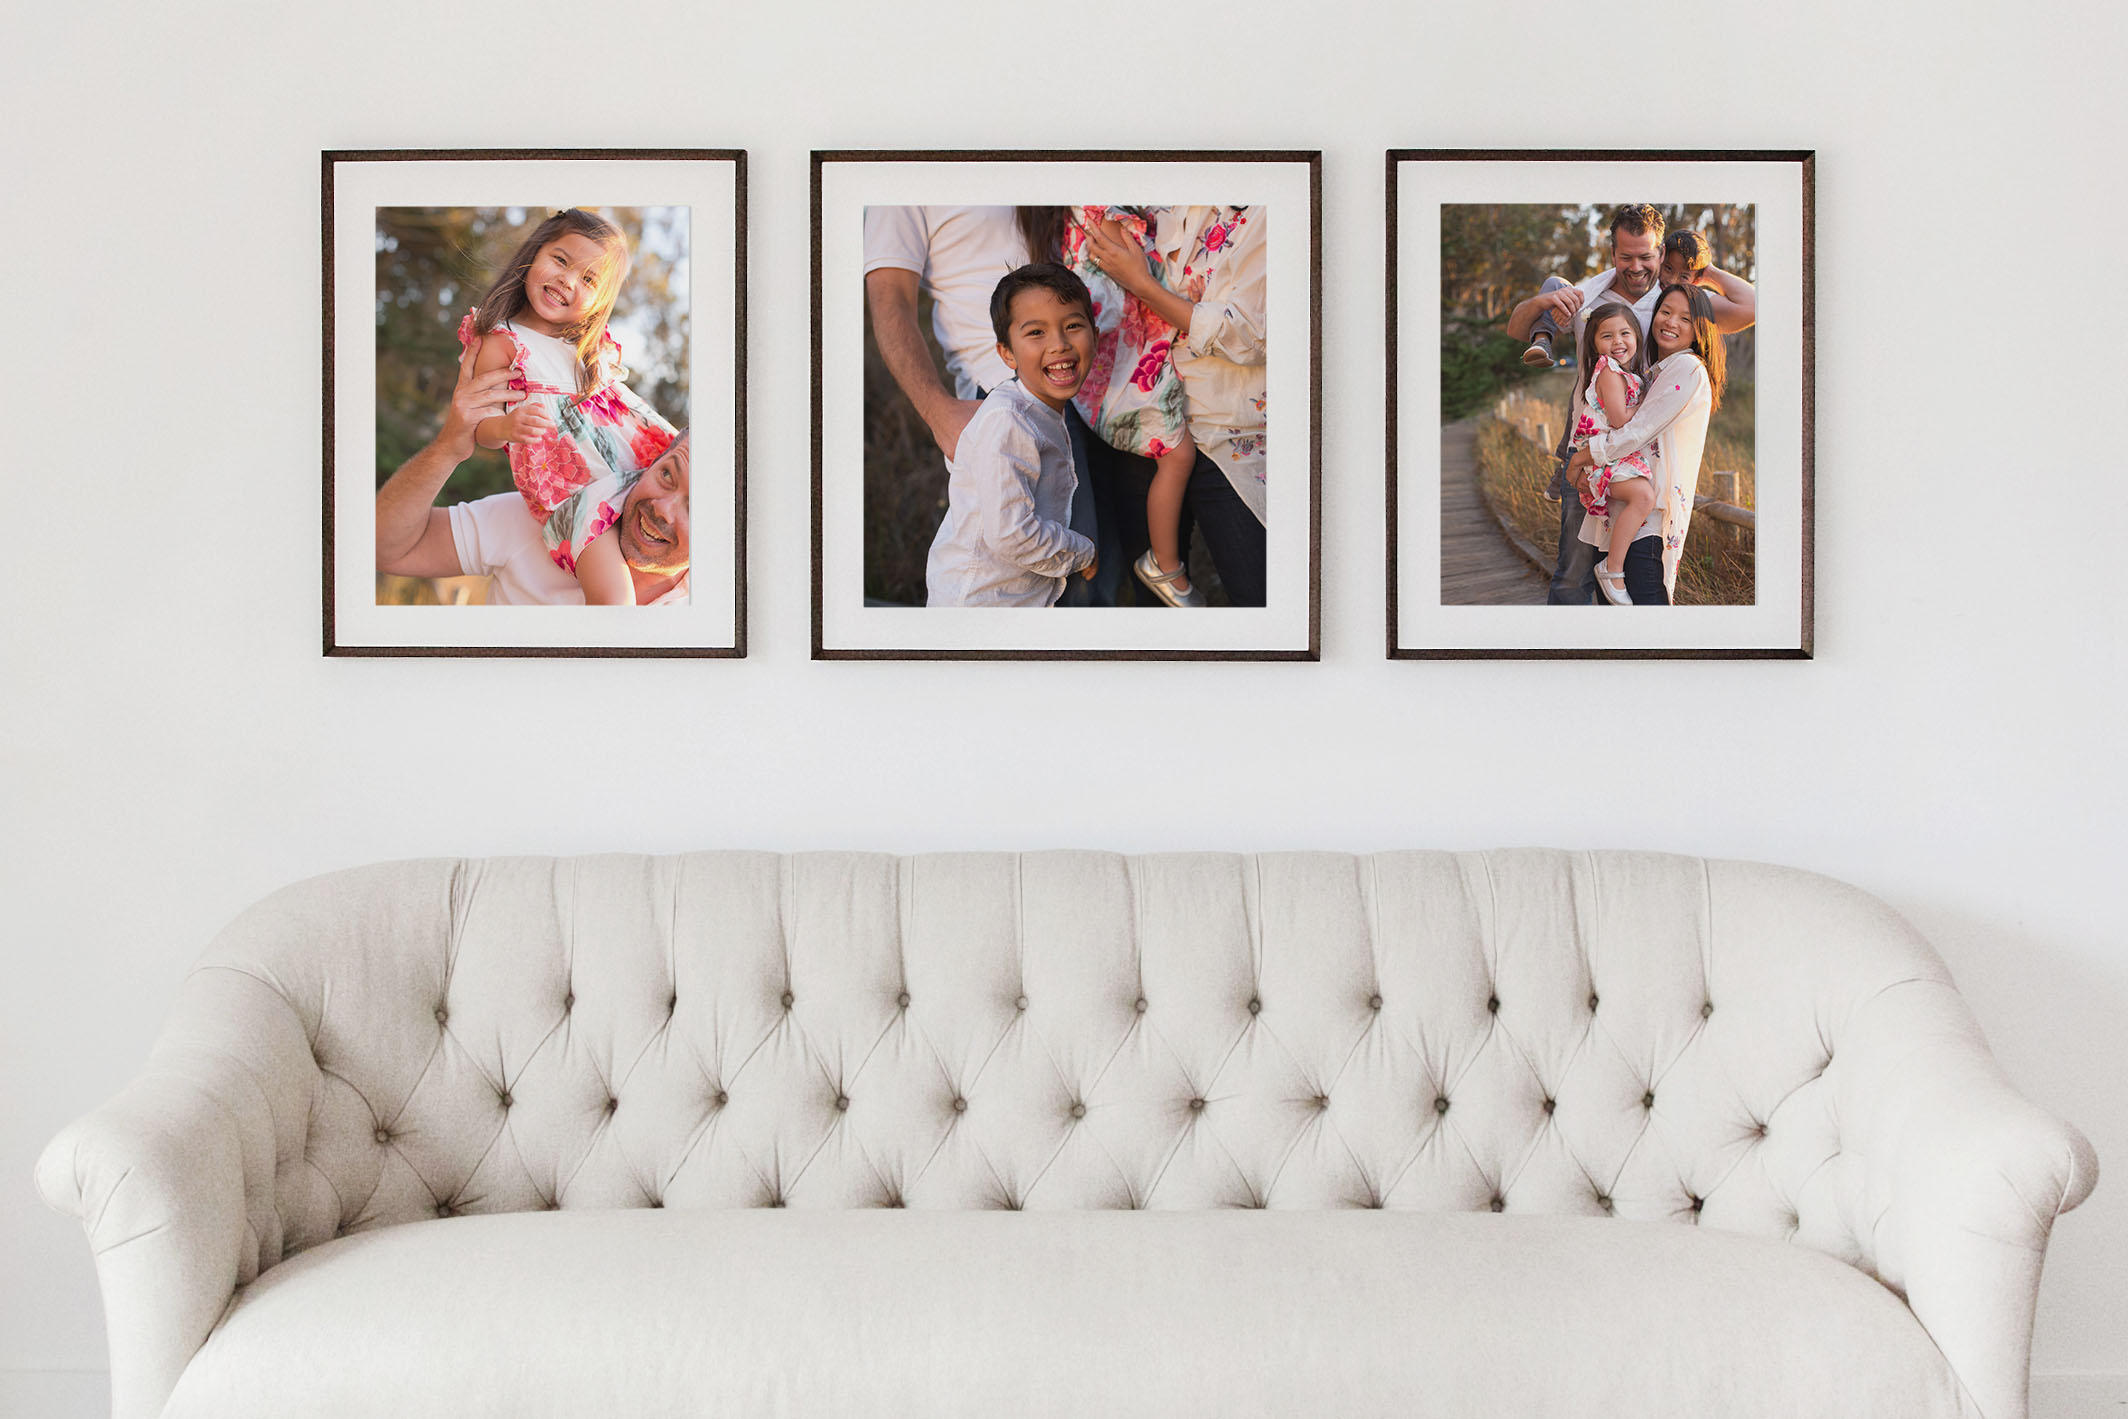 DESIGN_AGLOW_frames over couch 01.jpg